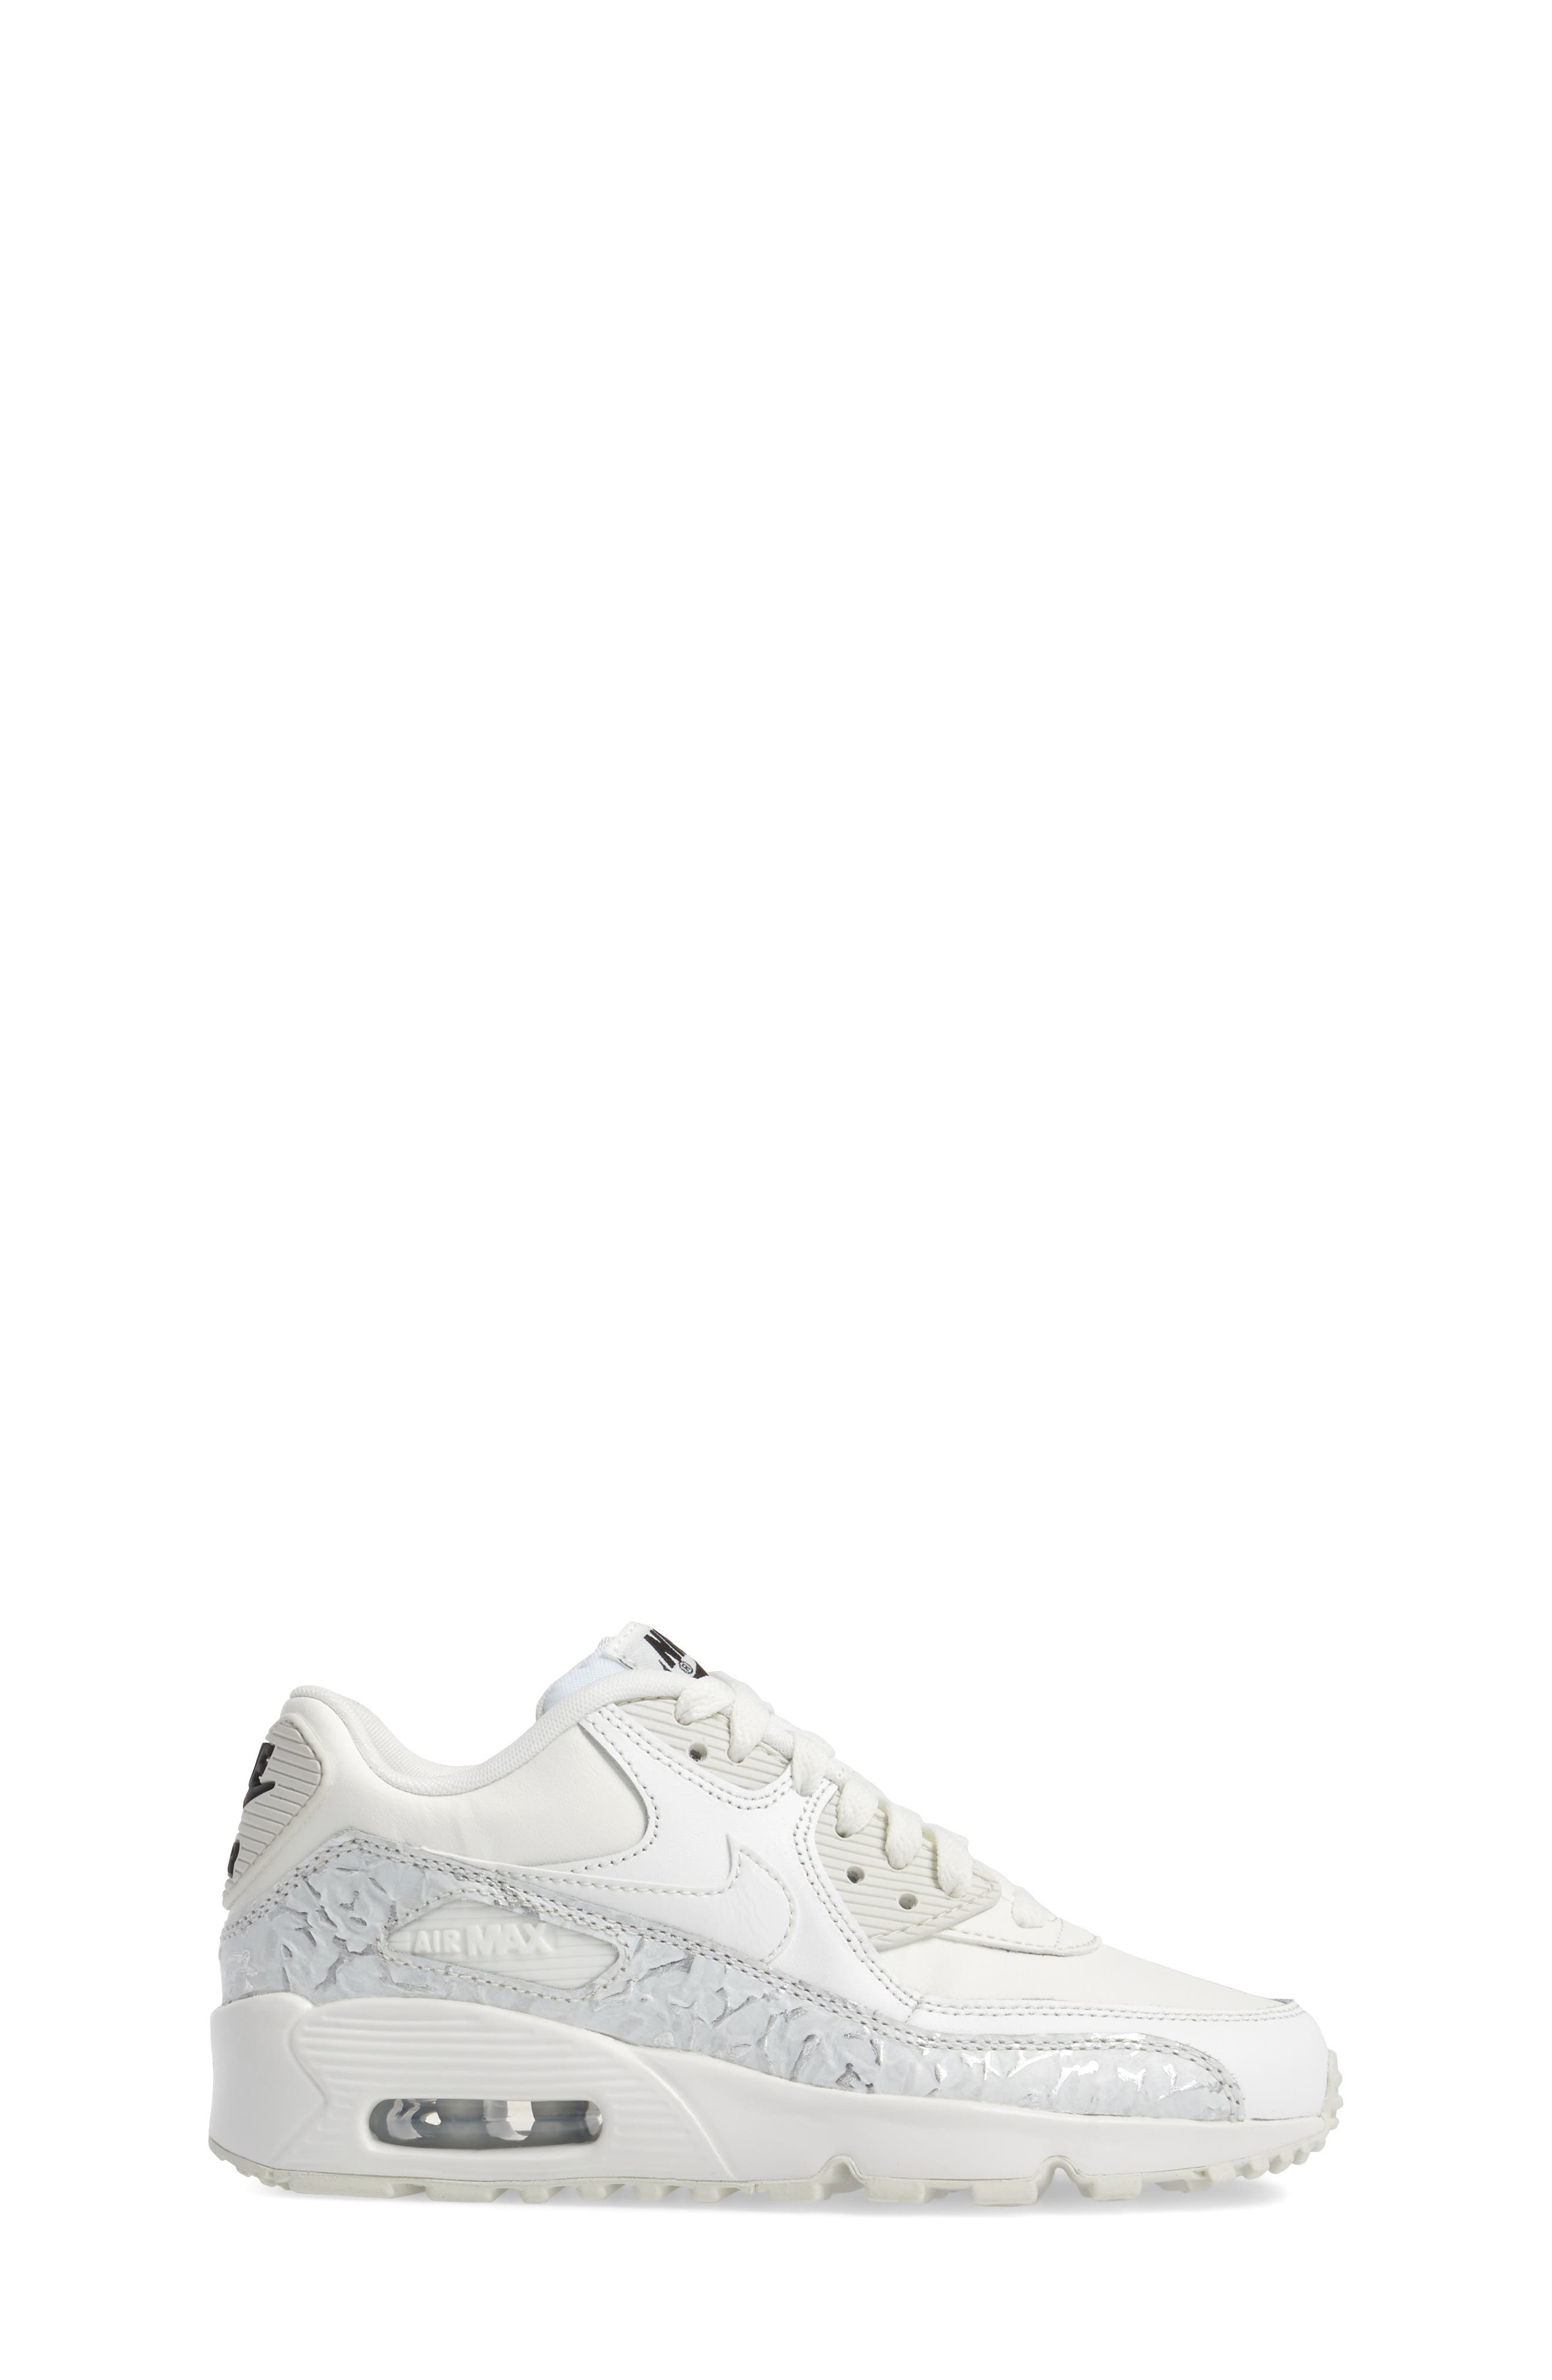 Air Max 90 Leather Sneaker,                             Alternate thumbnail 3, color,                             Summit White/ Black